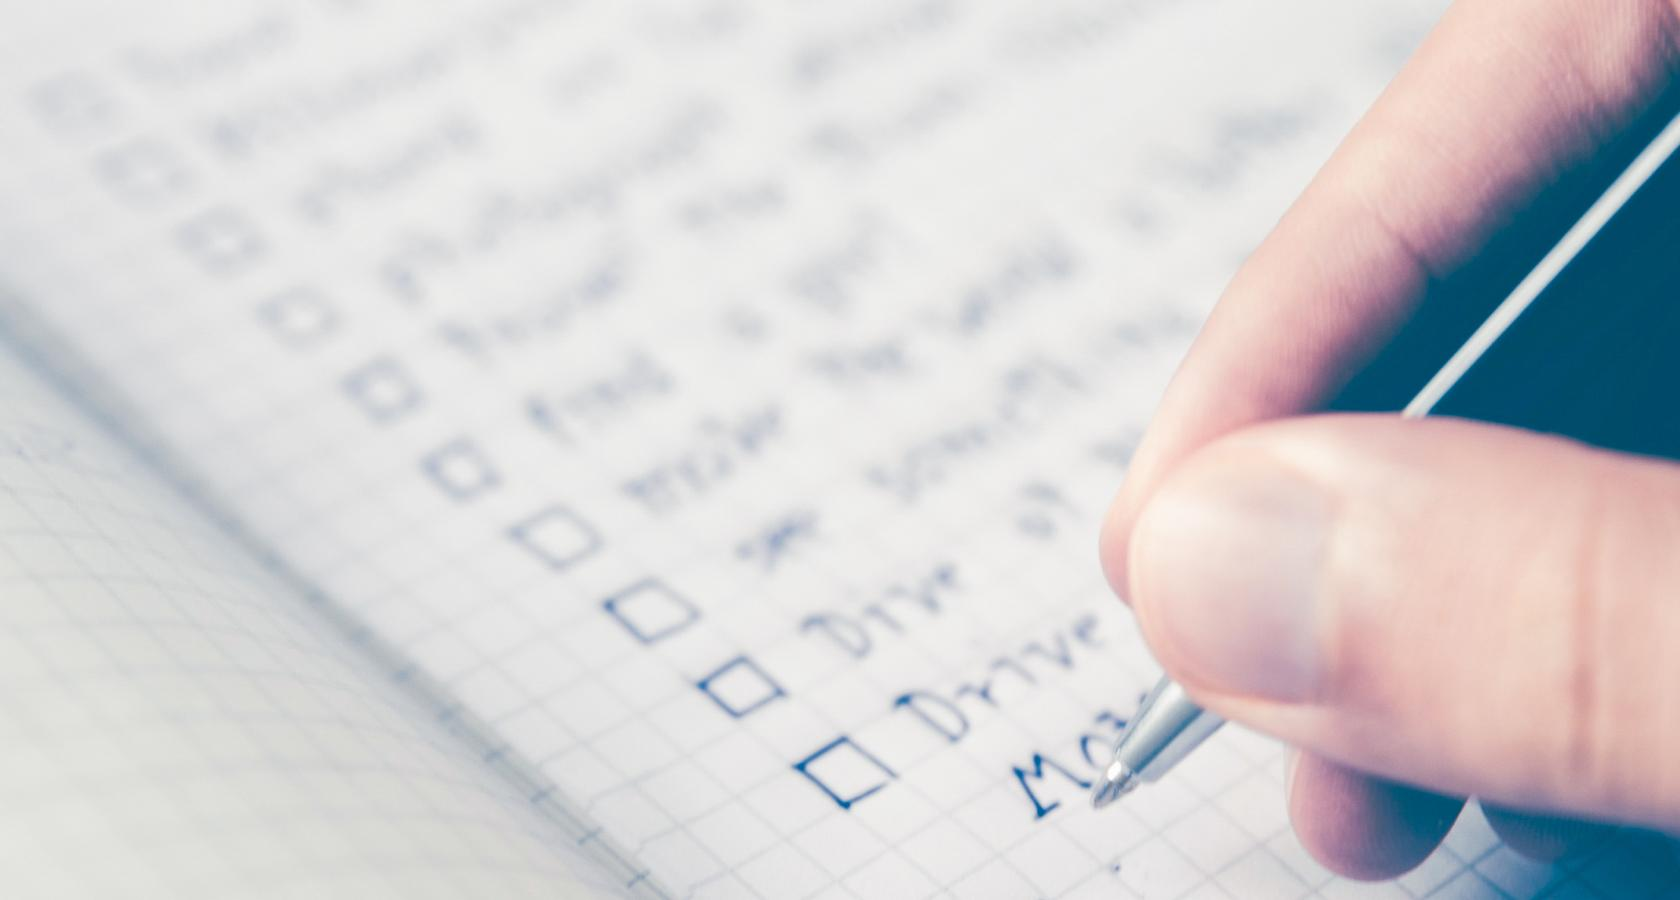 Web designer working on a final project checklist